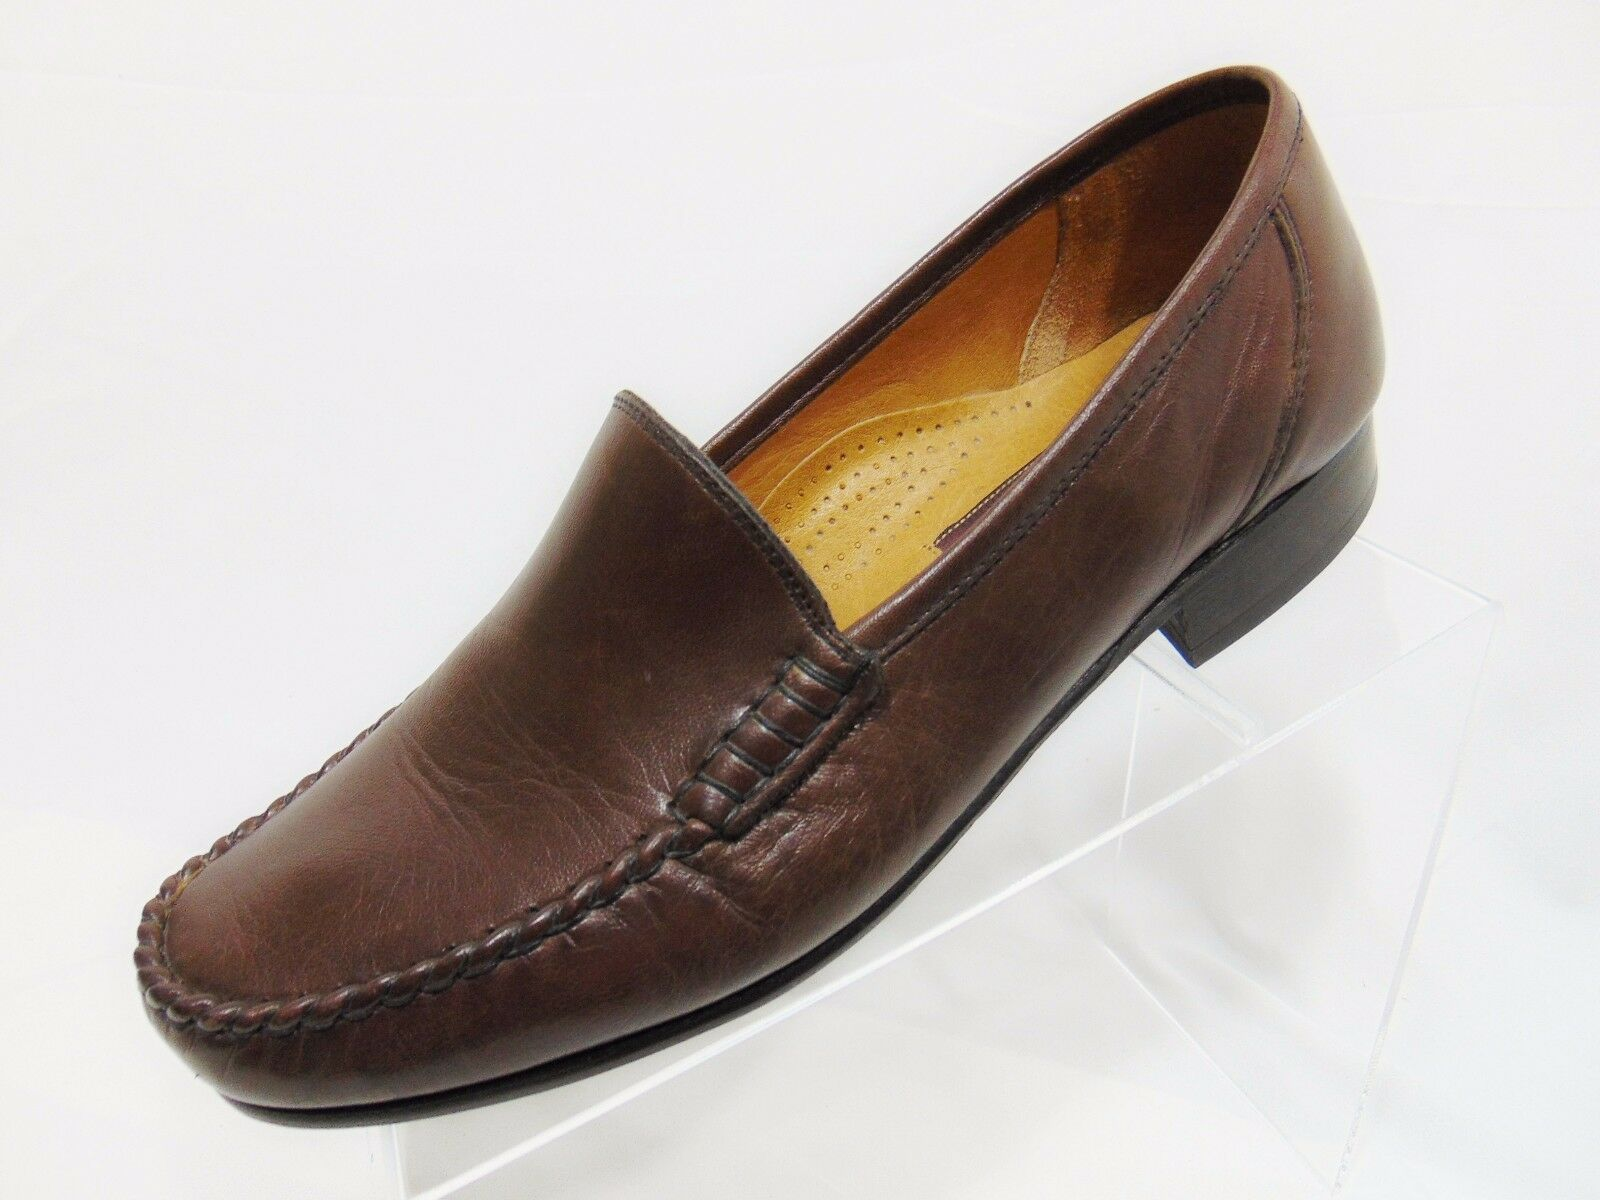 VALLEgreen Personal Comfort Men's Loafer Style shoes EUR-41.5 USA 8.5 Dark Brown